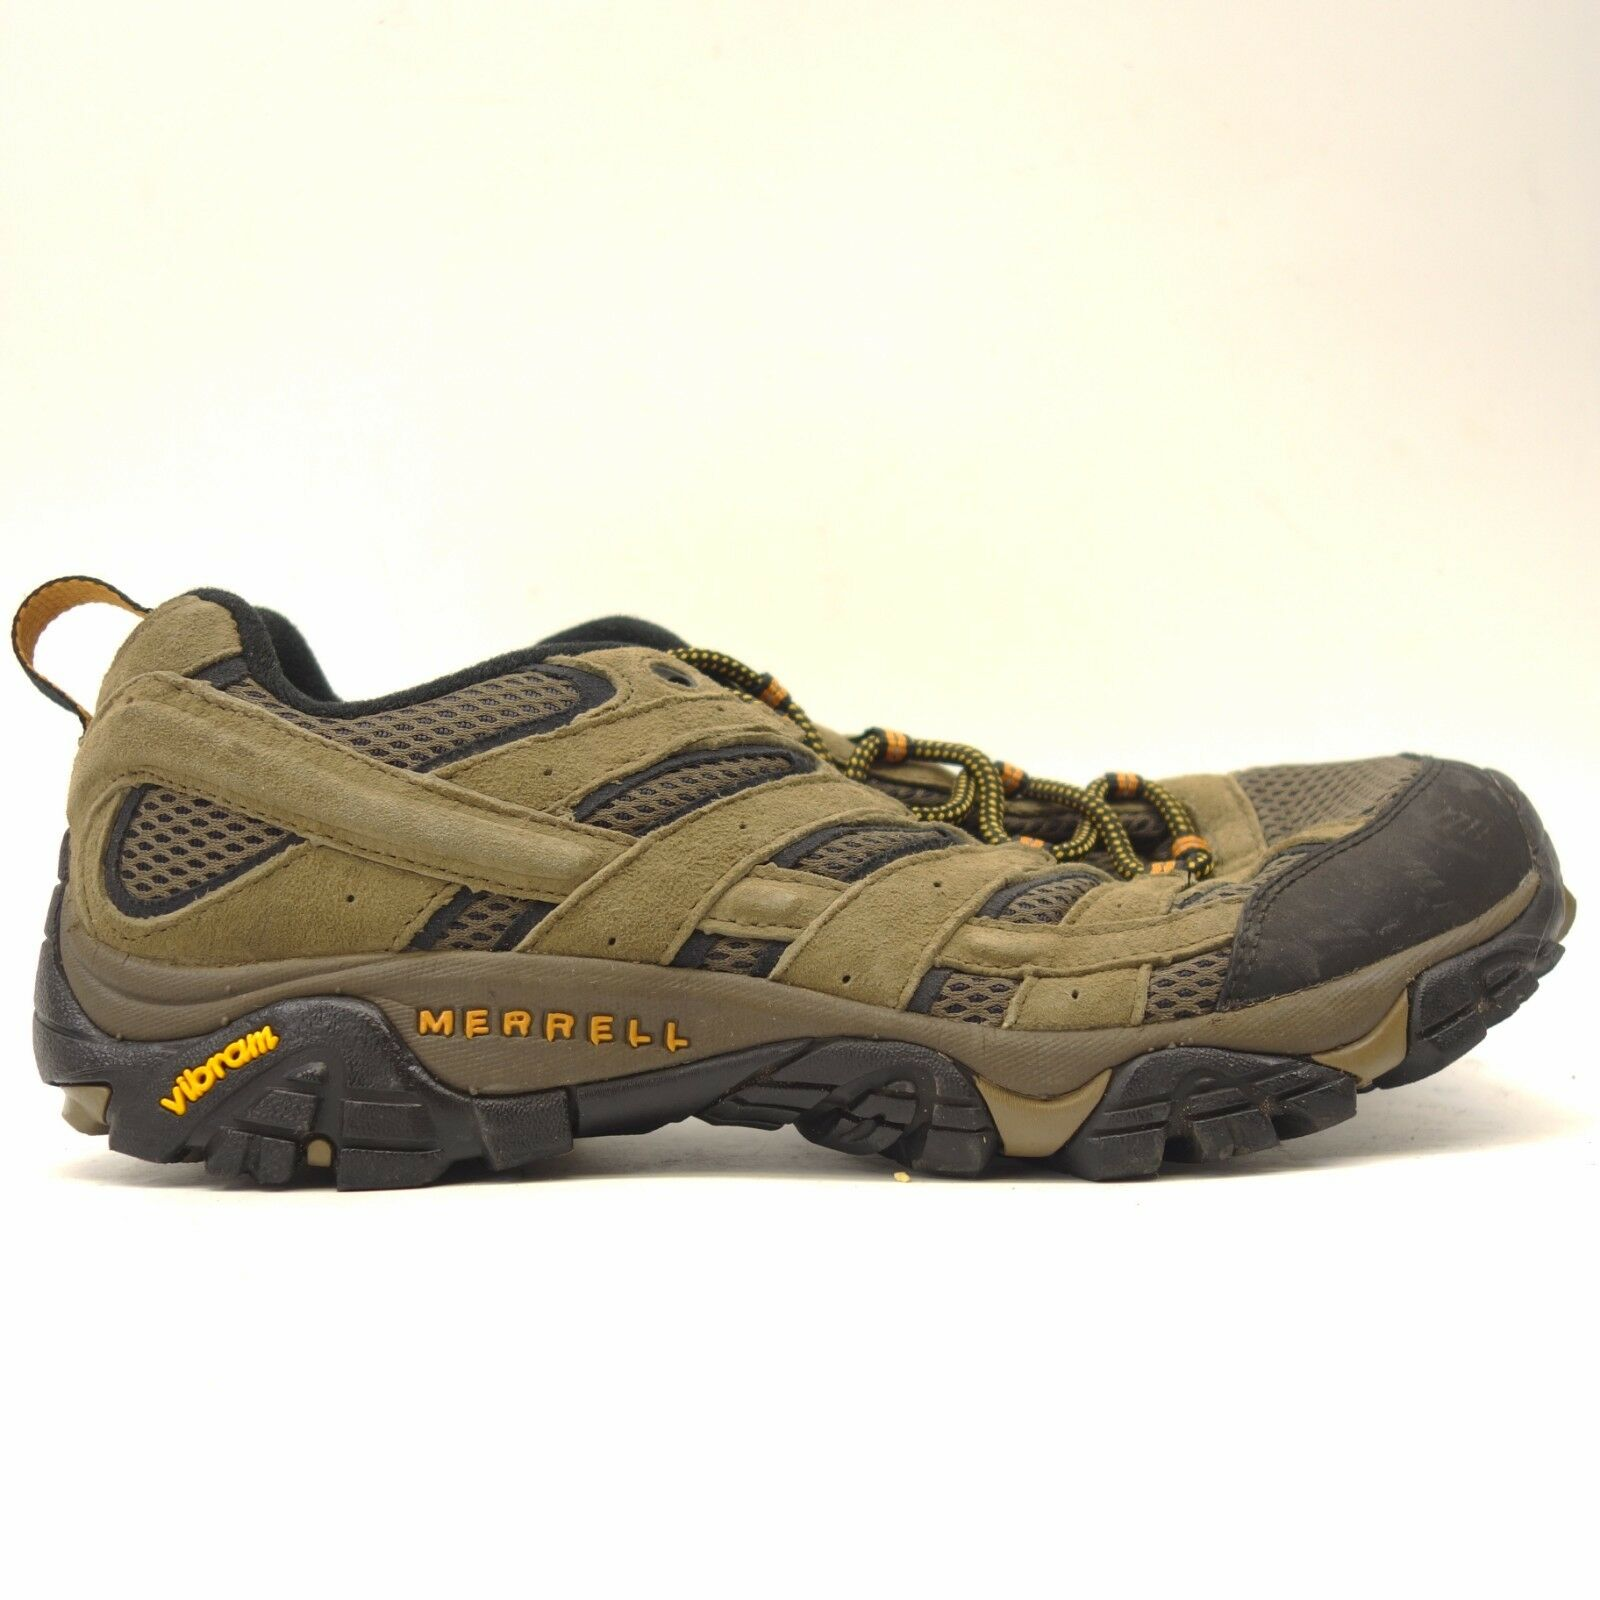 Merrell Mens Moab 2 Waterproof Breathable Athletic Hiking Trail shoes Sz 9.5